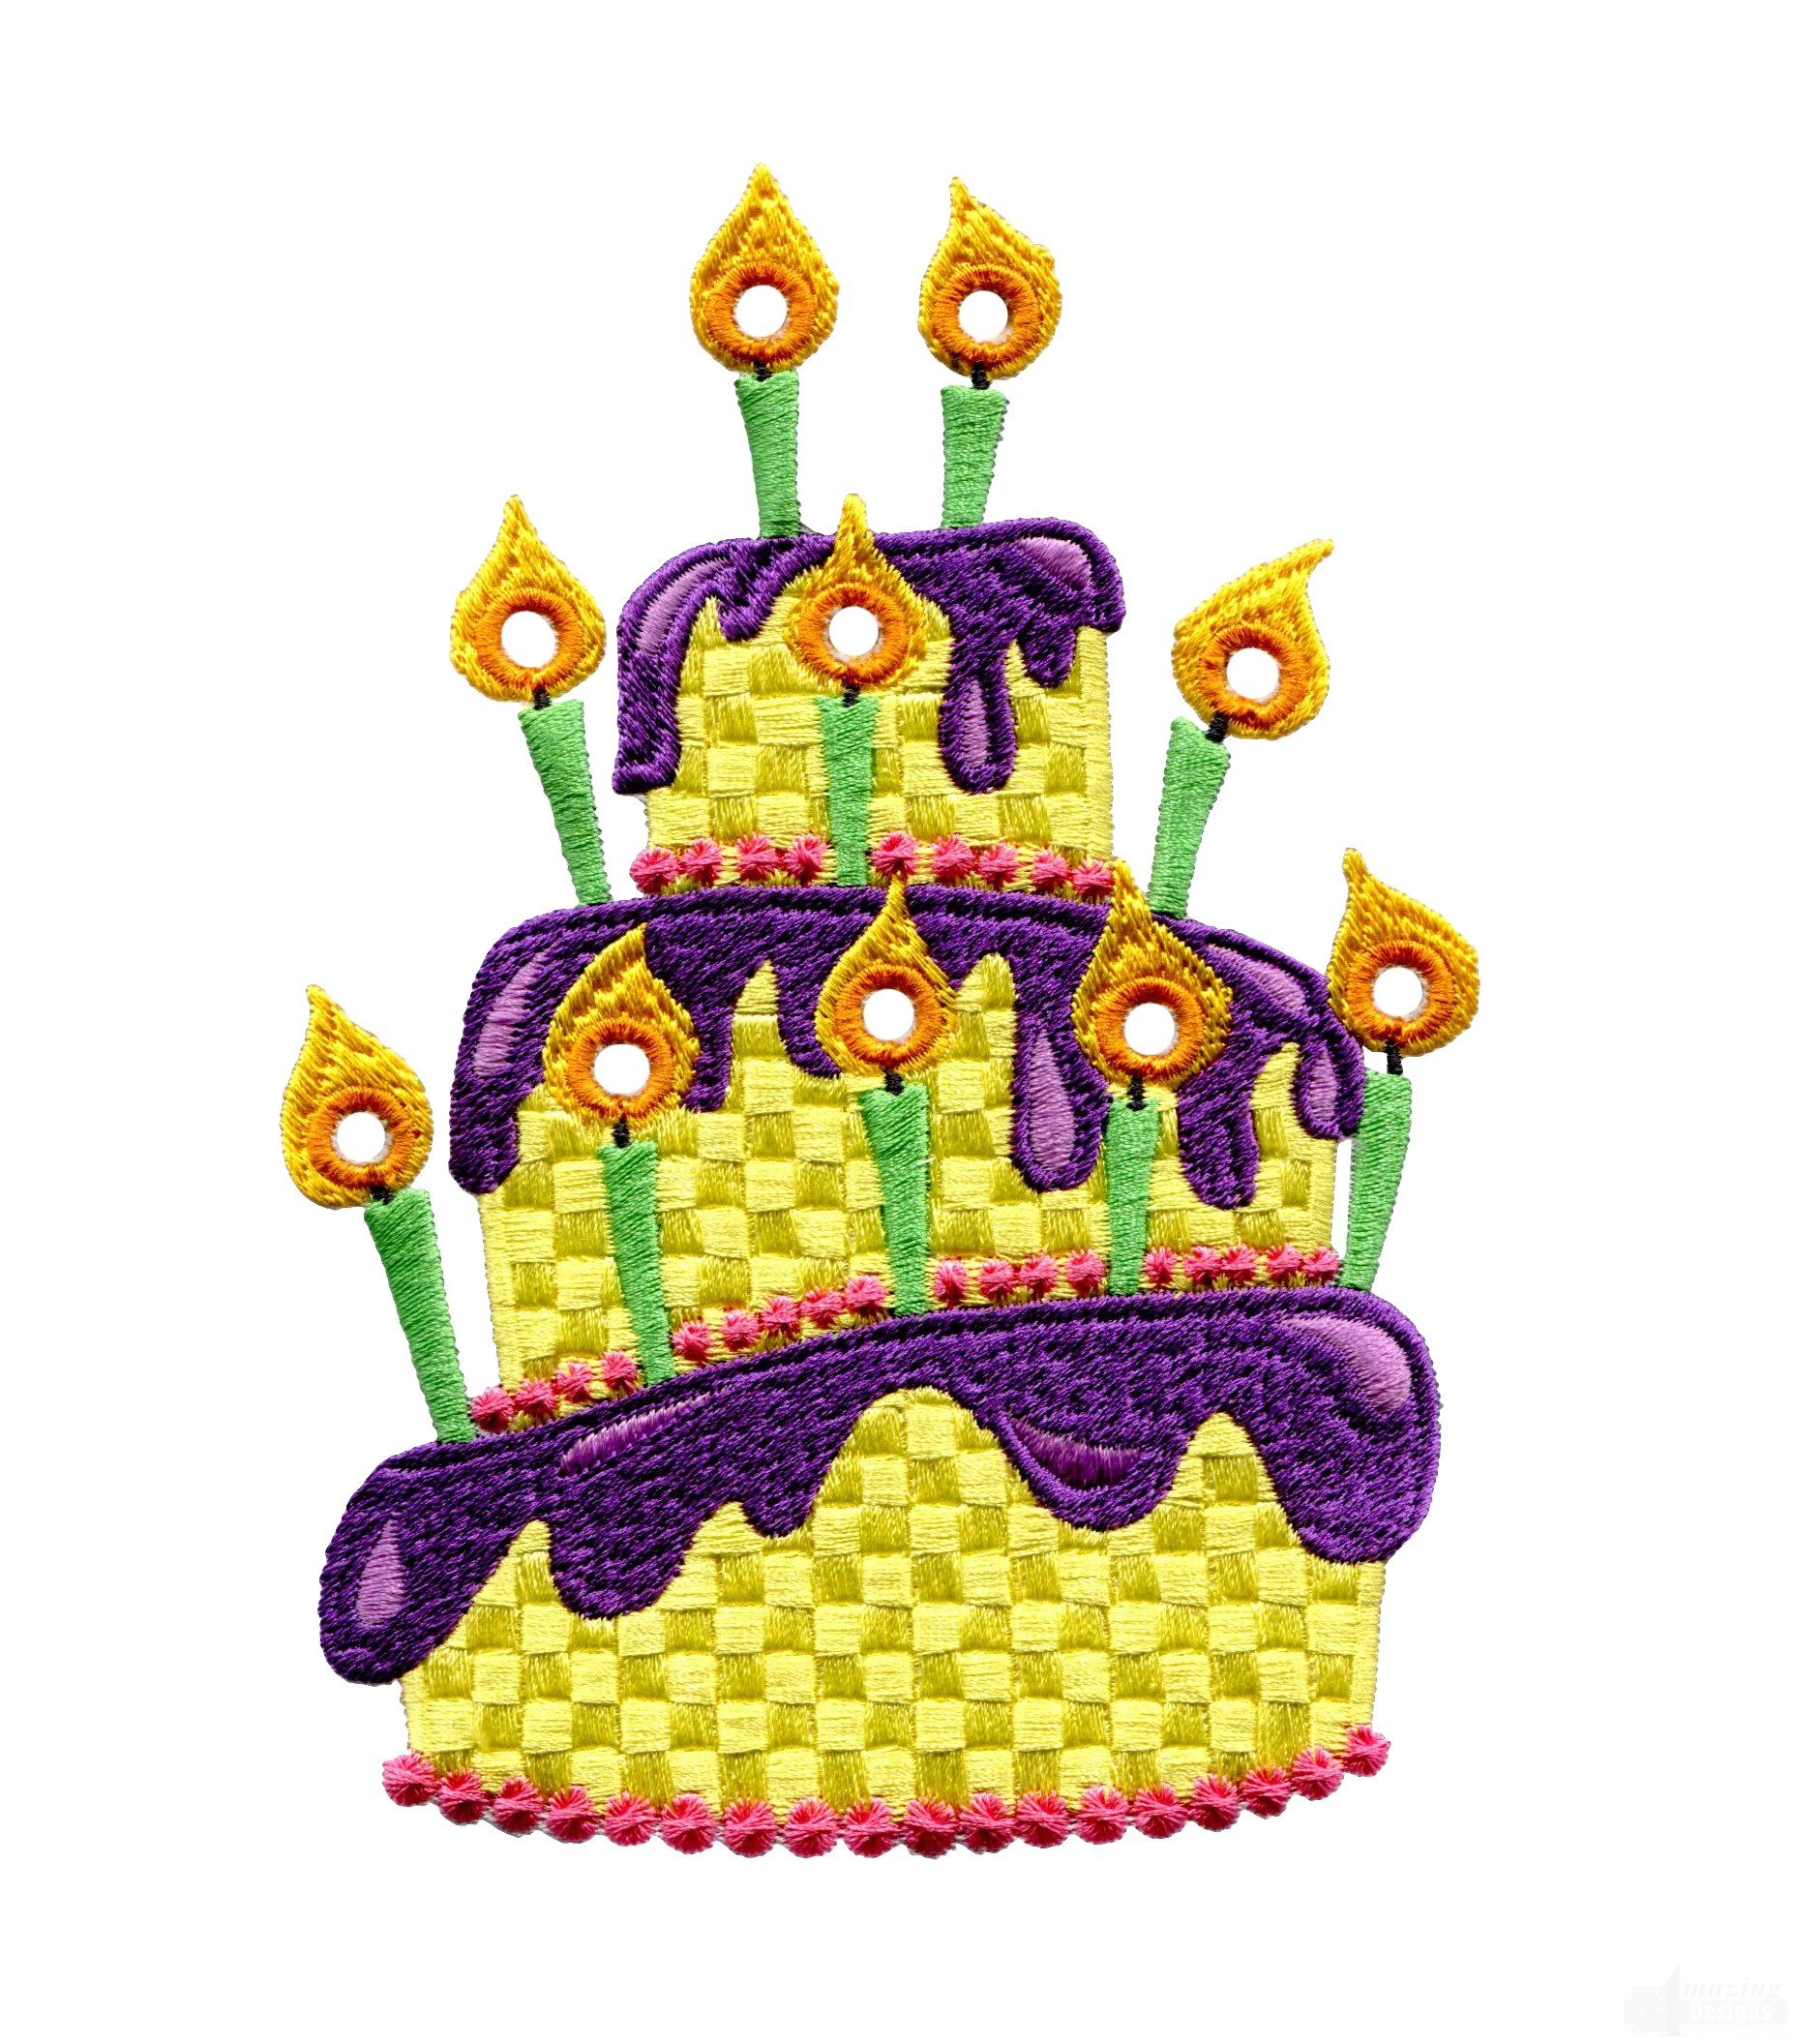 Cake Design Programs Download Free : Birthday Cake Embroidery Design